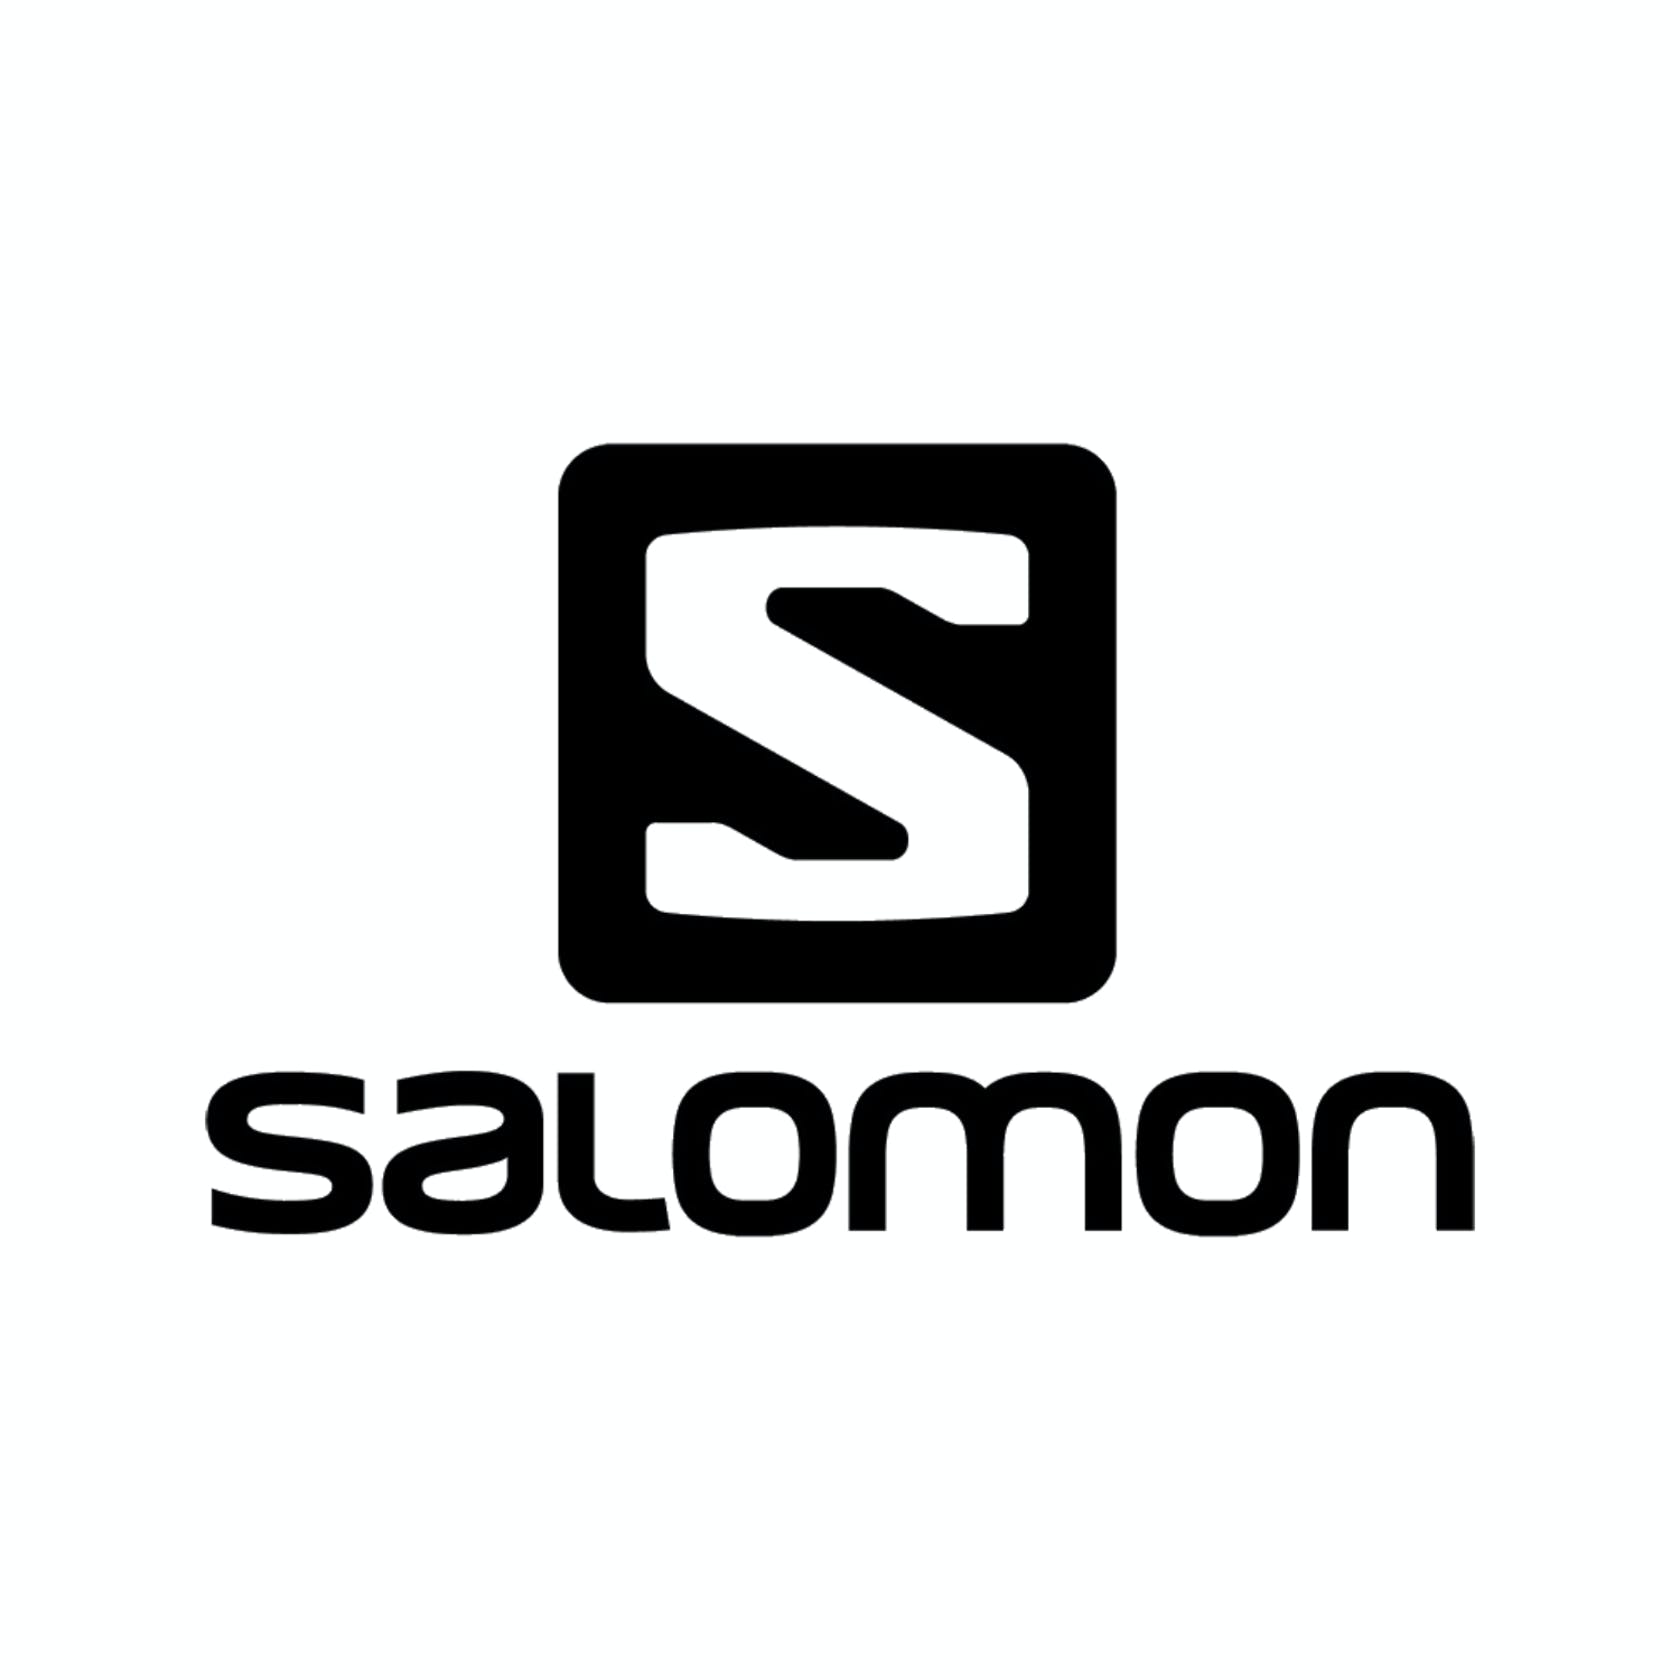 Salomon shop online